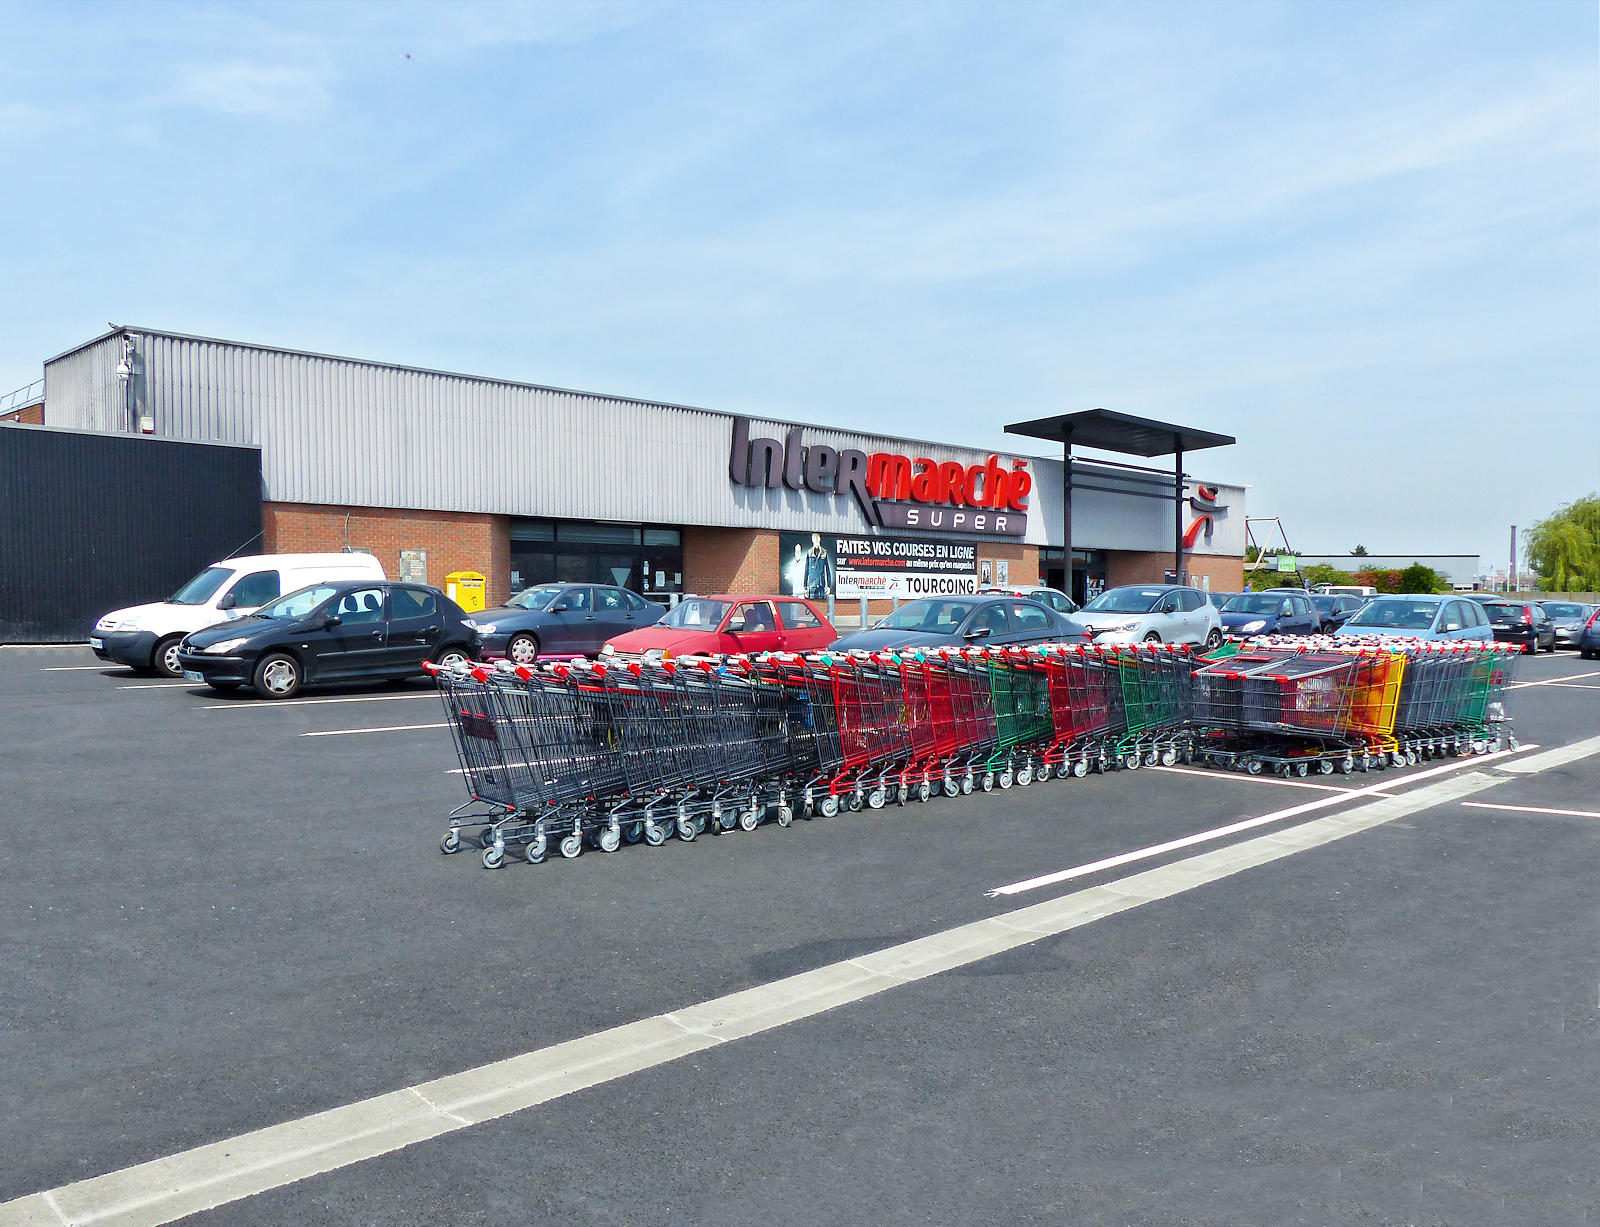 Intermarché Super & Drive - Tourcoing